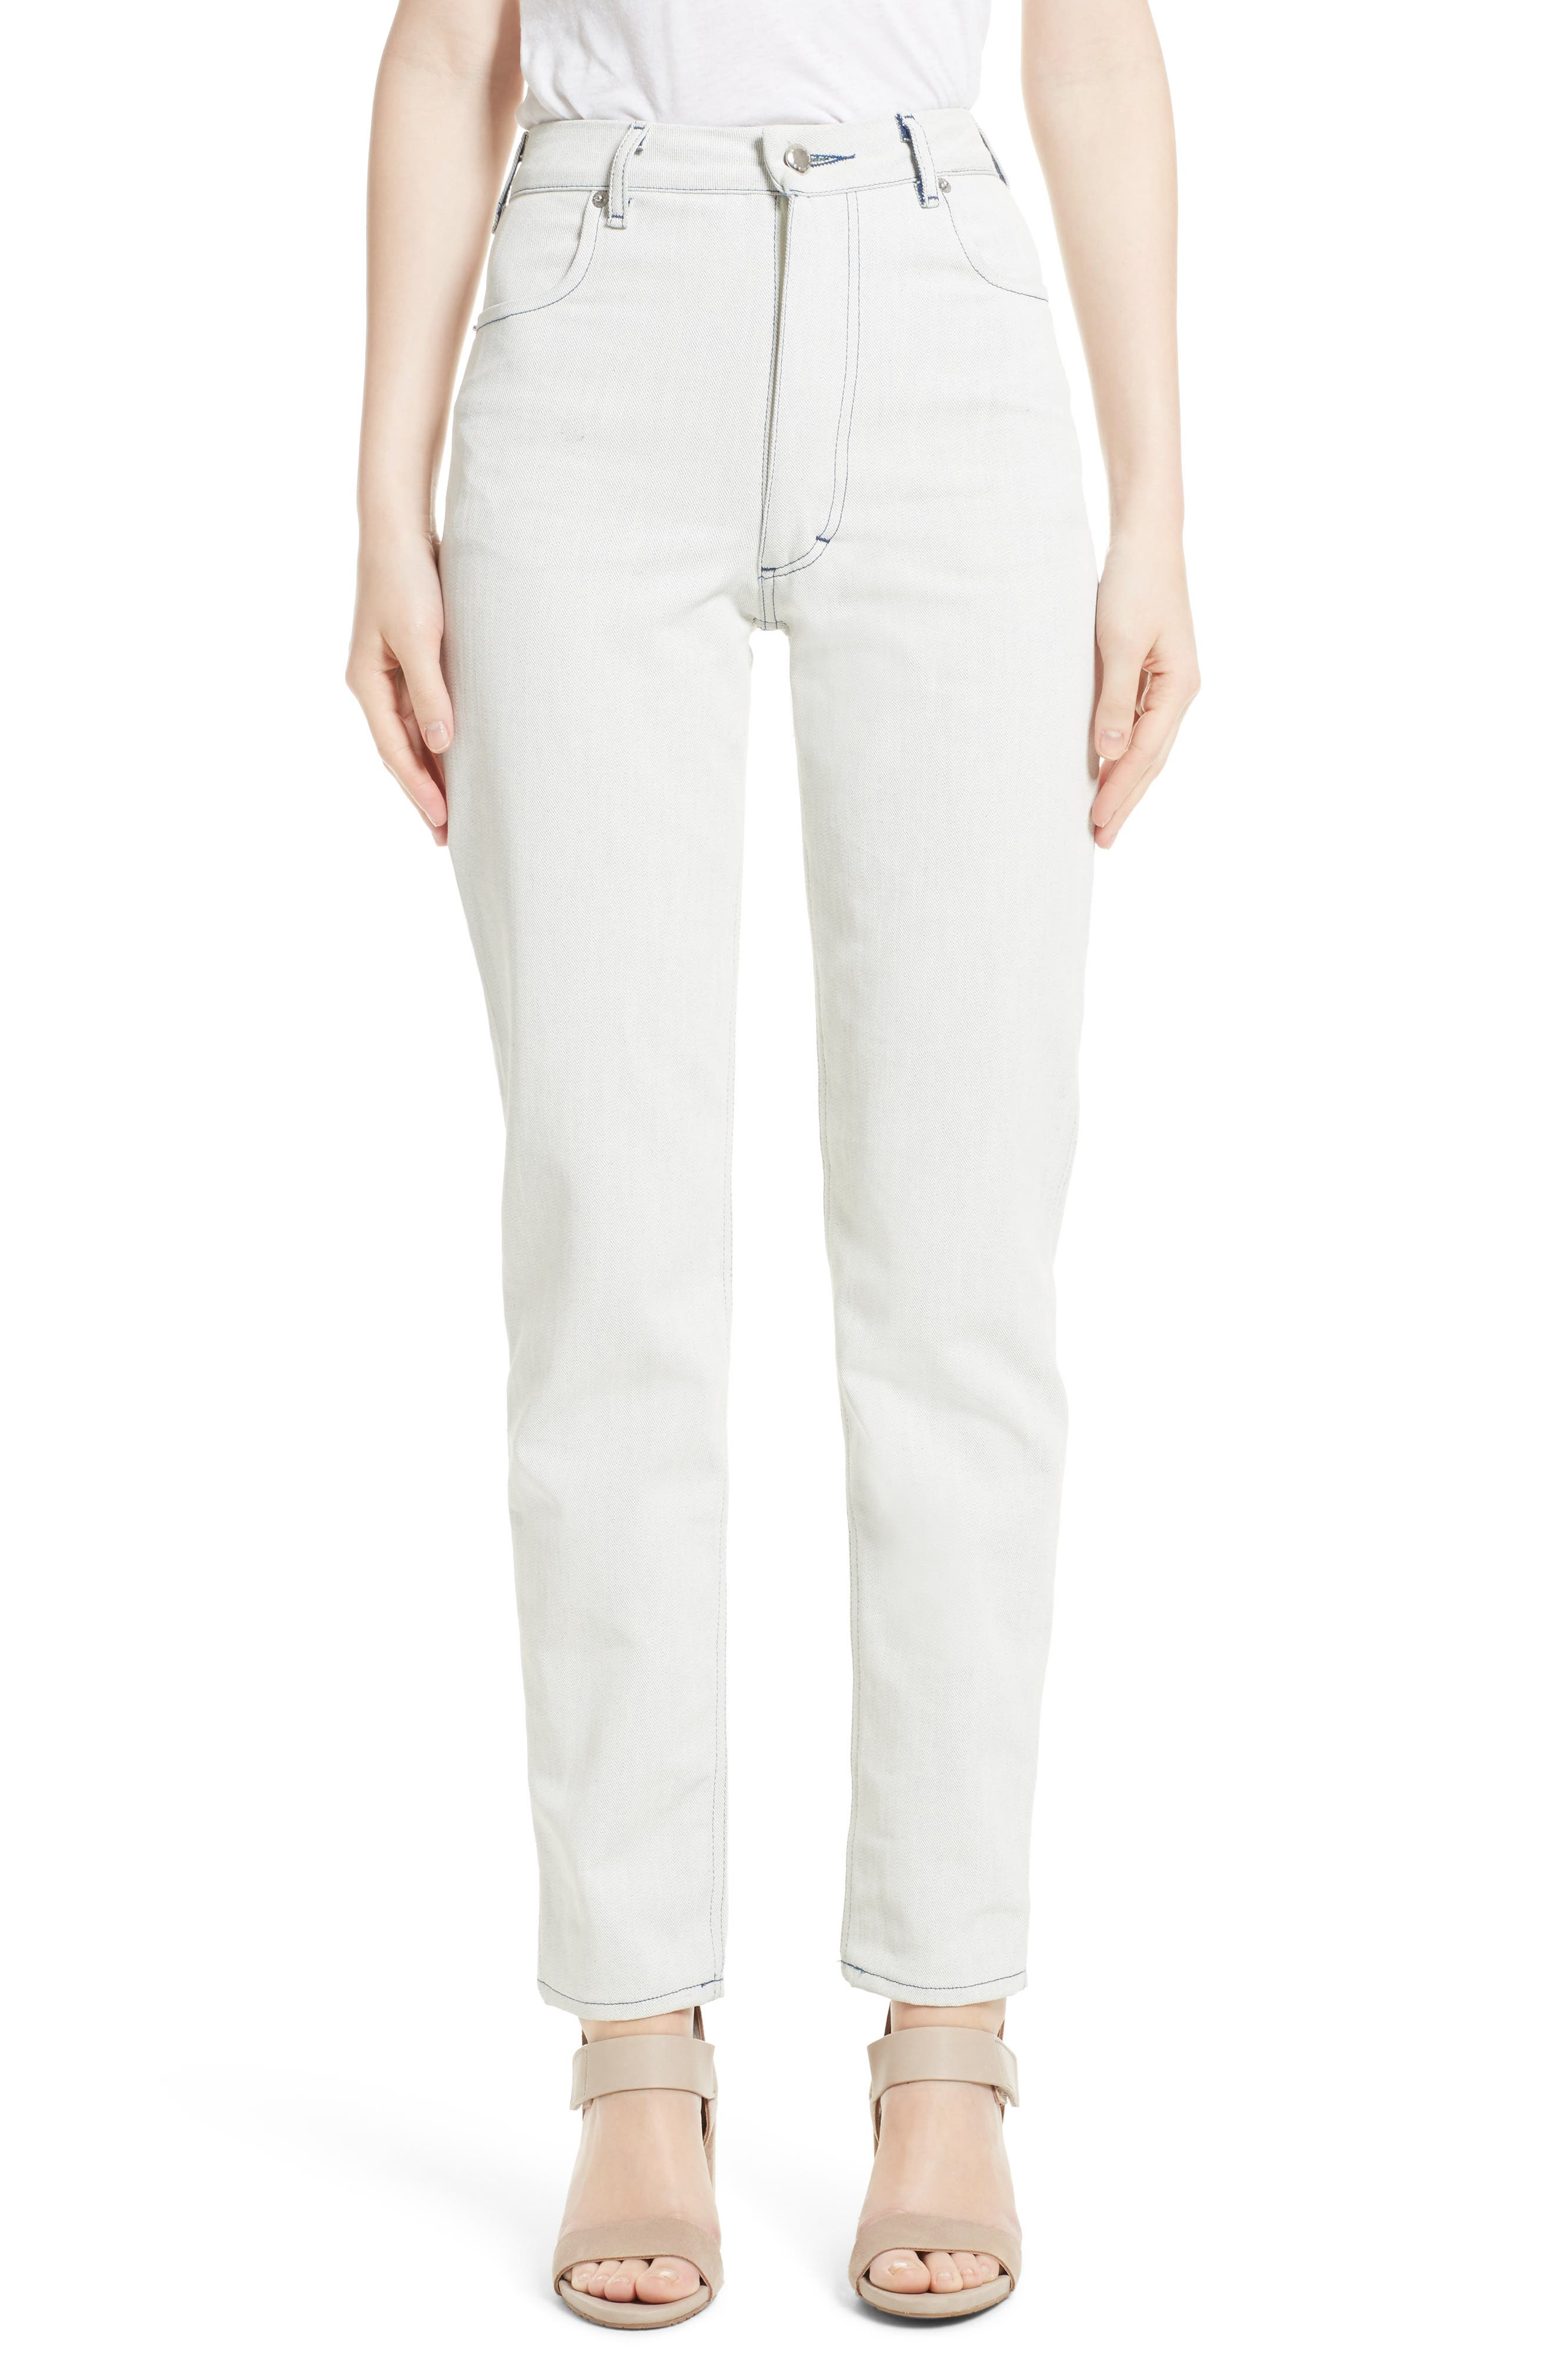 ECKHAUS LATTA High Waist Crop Jeans